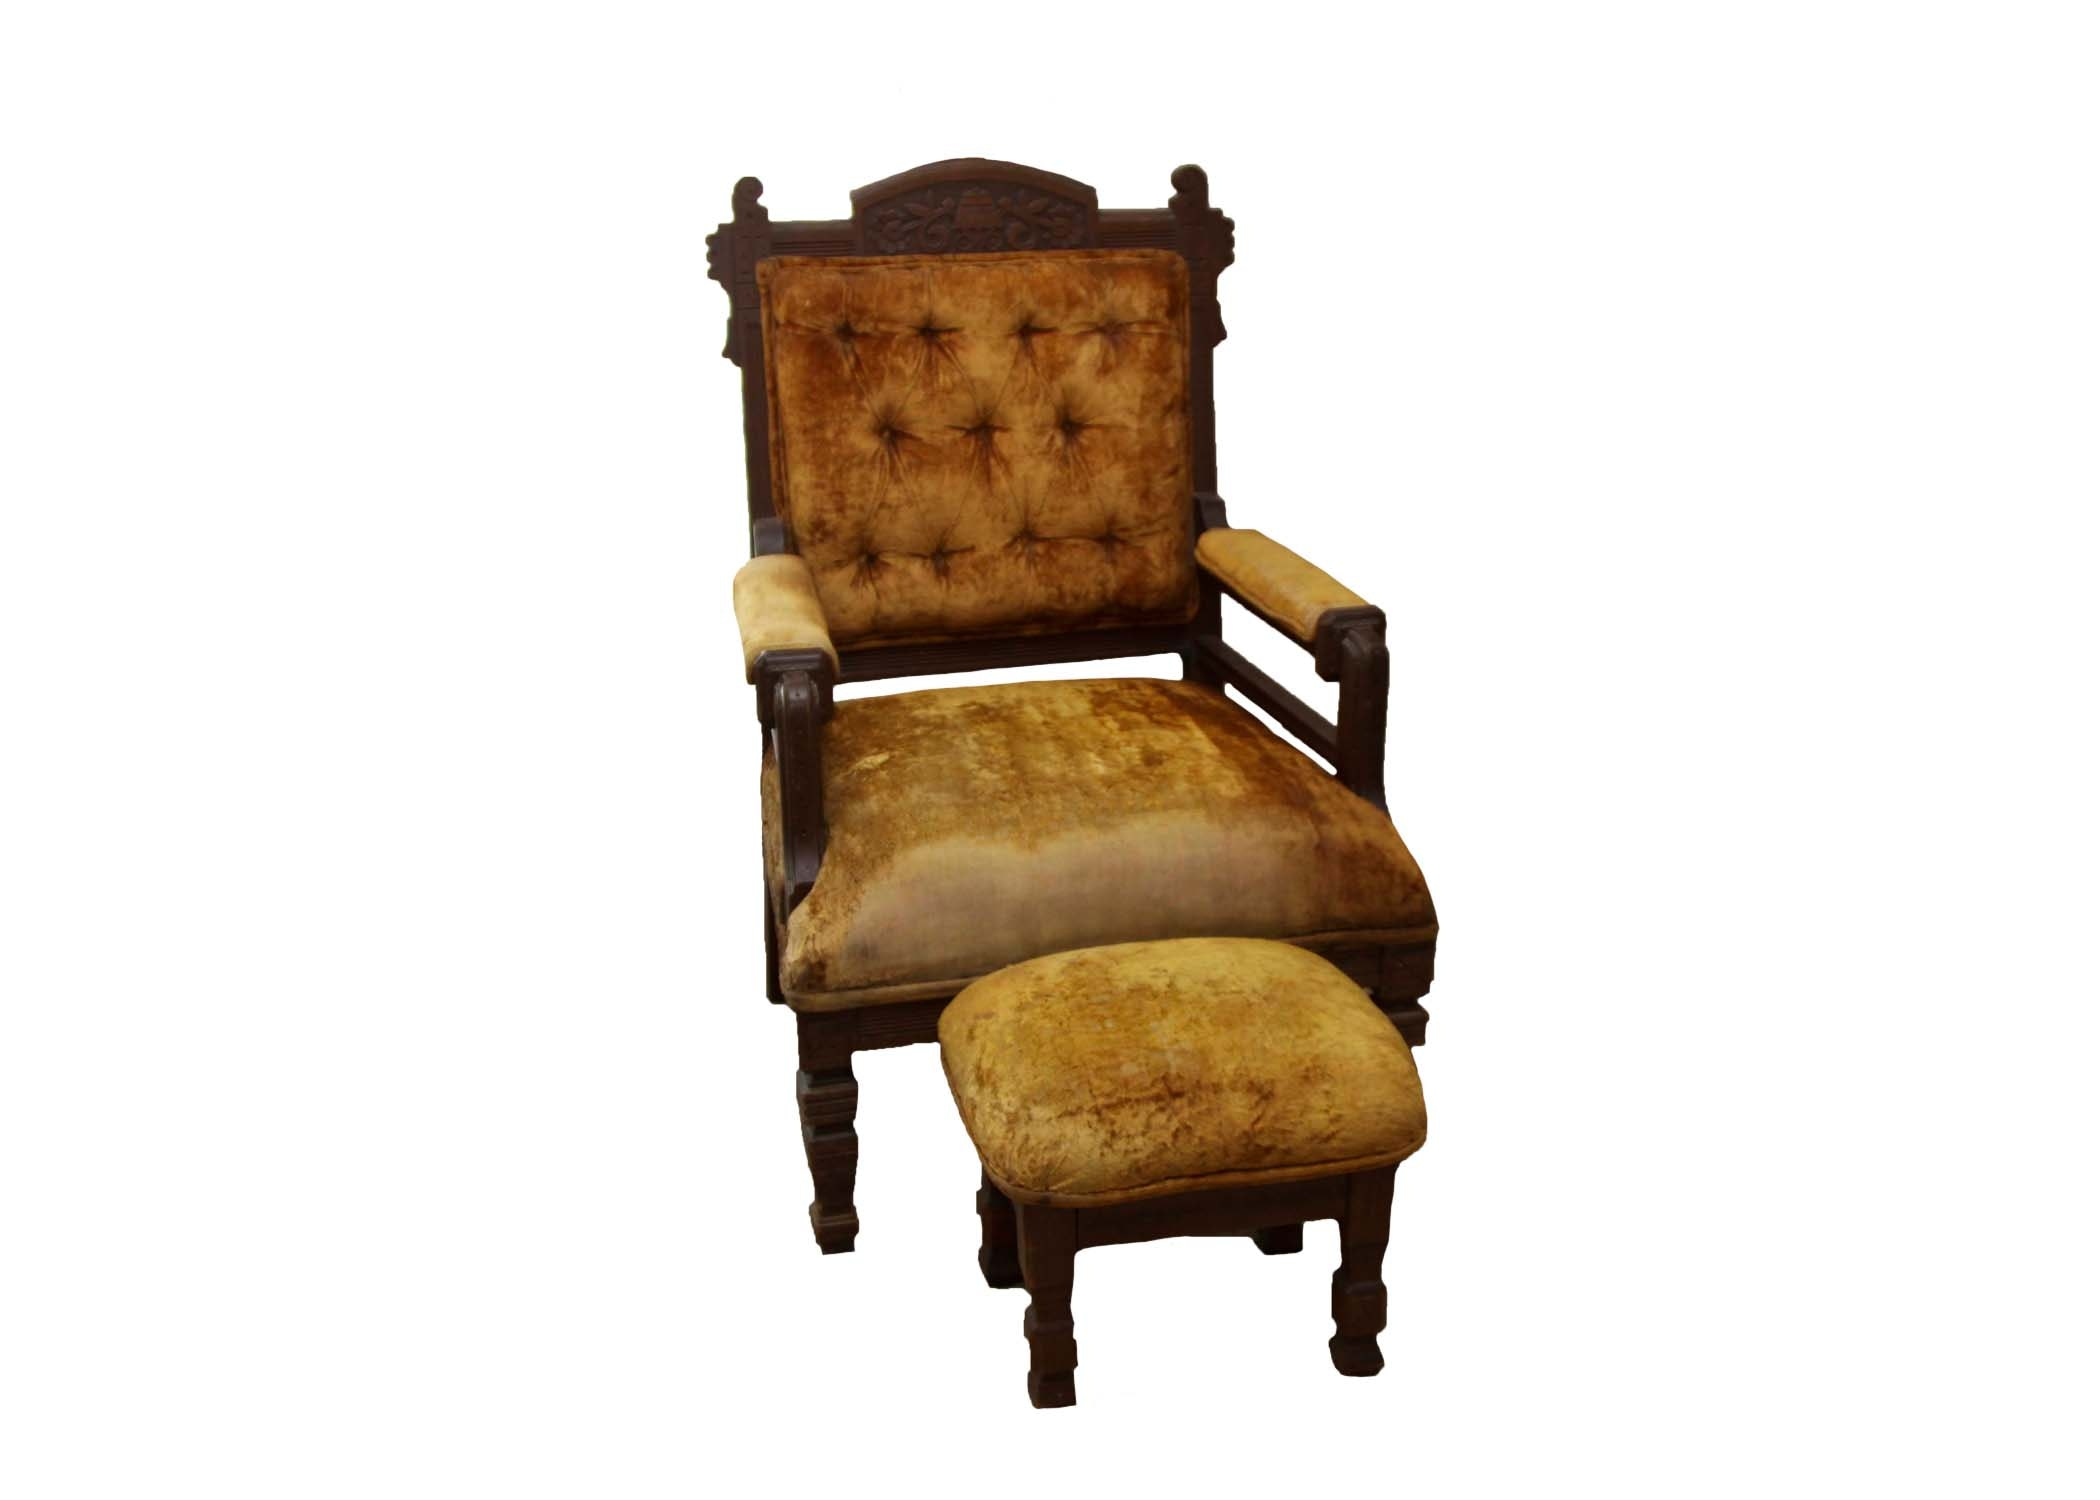 Eastlake Style Chair and Foot Rest